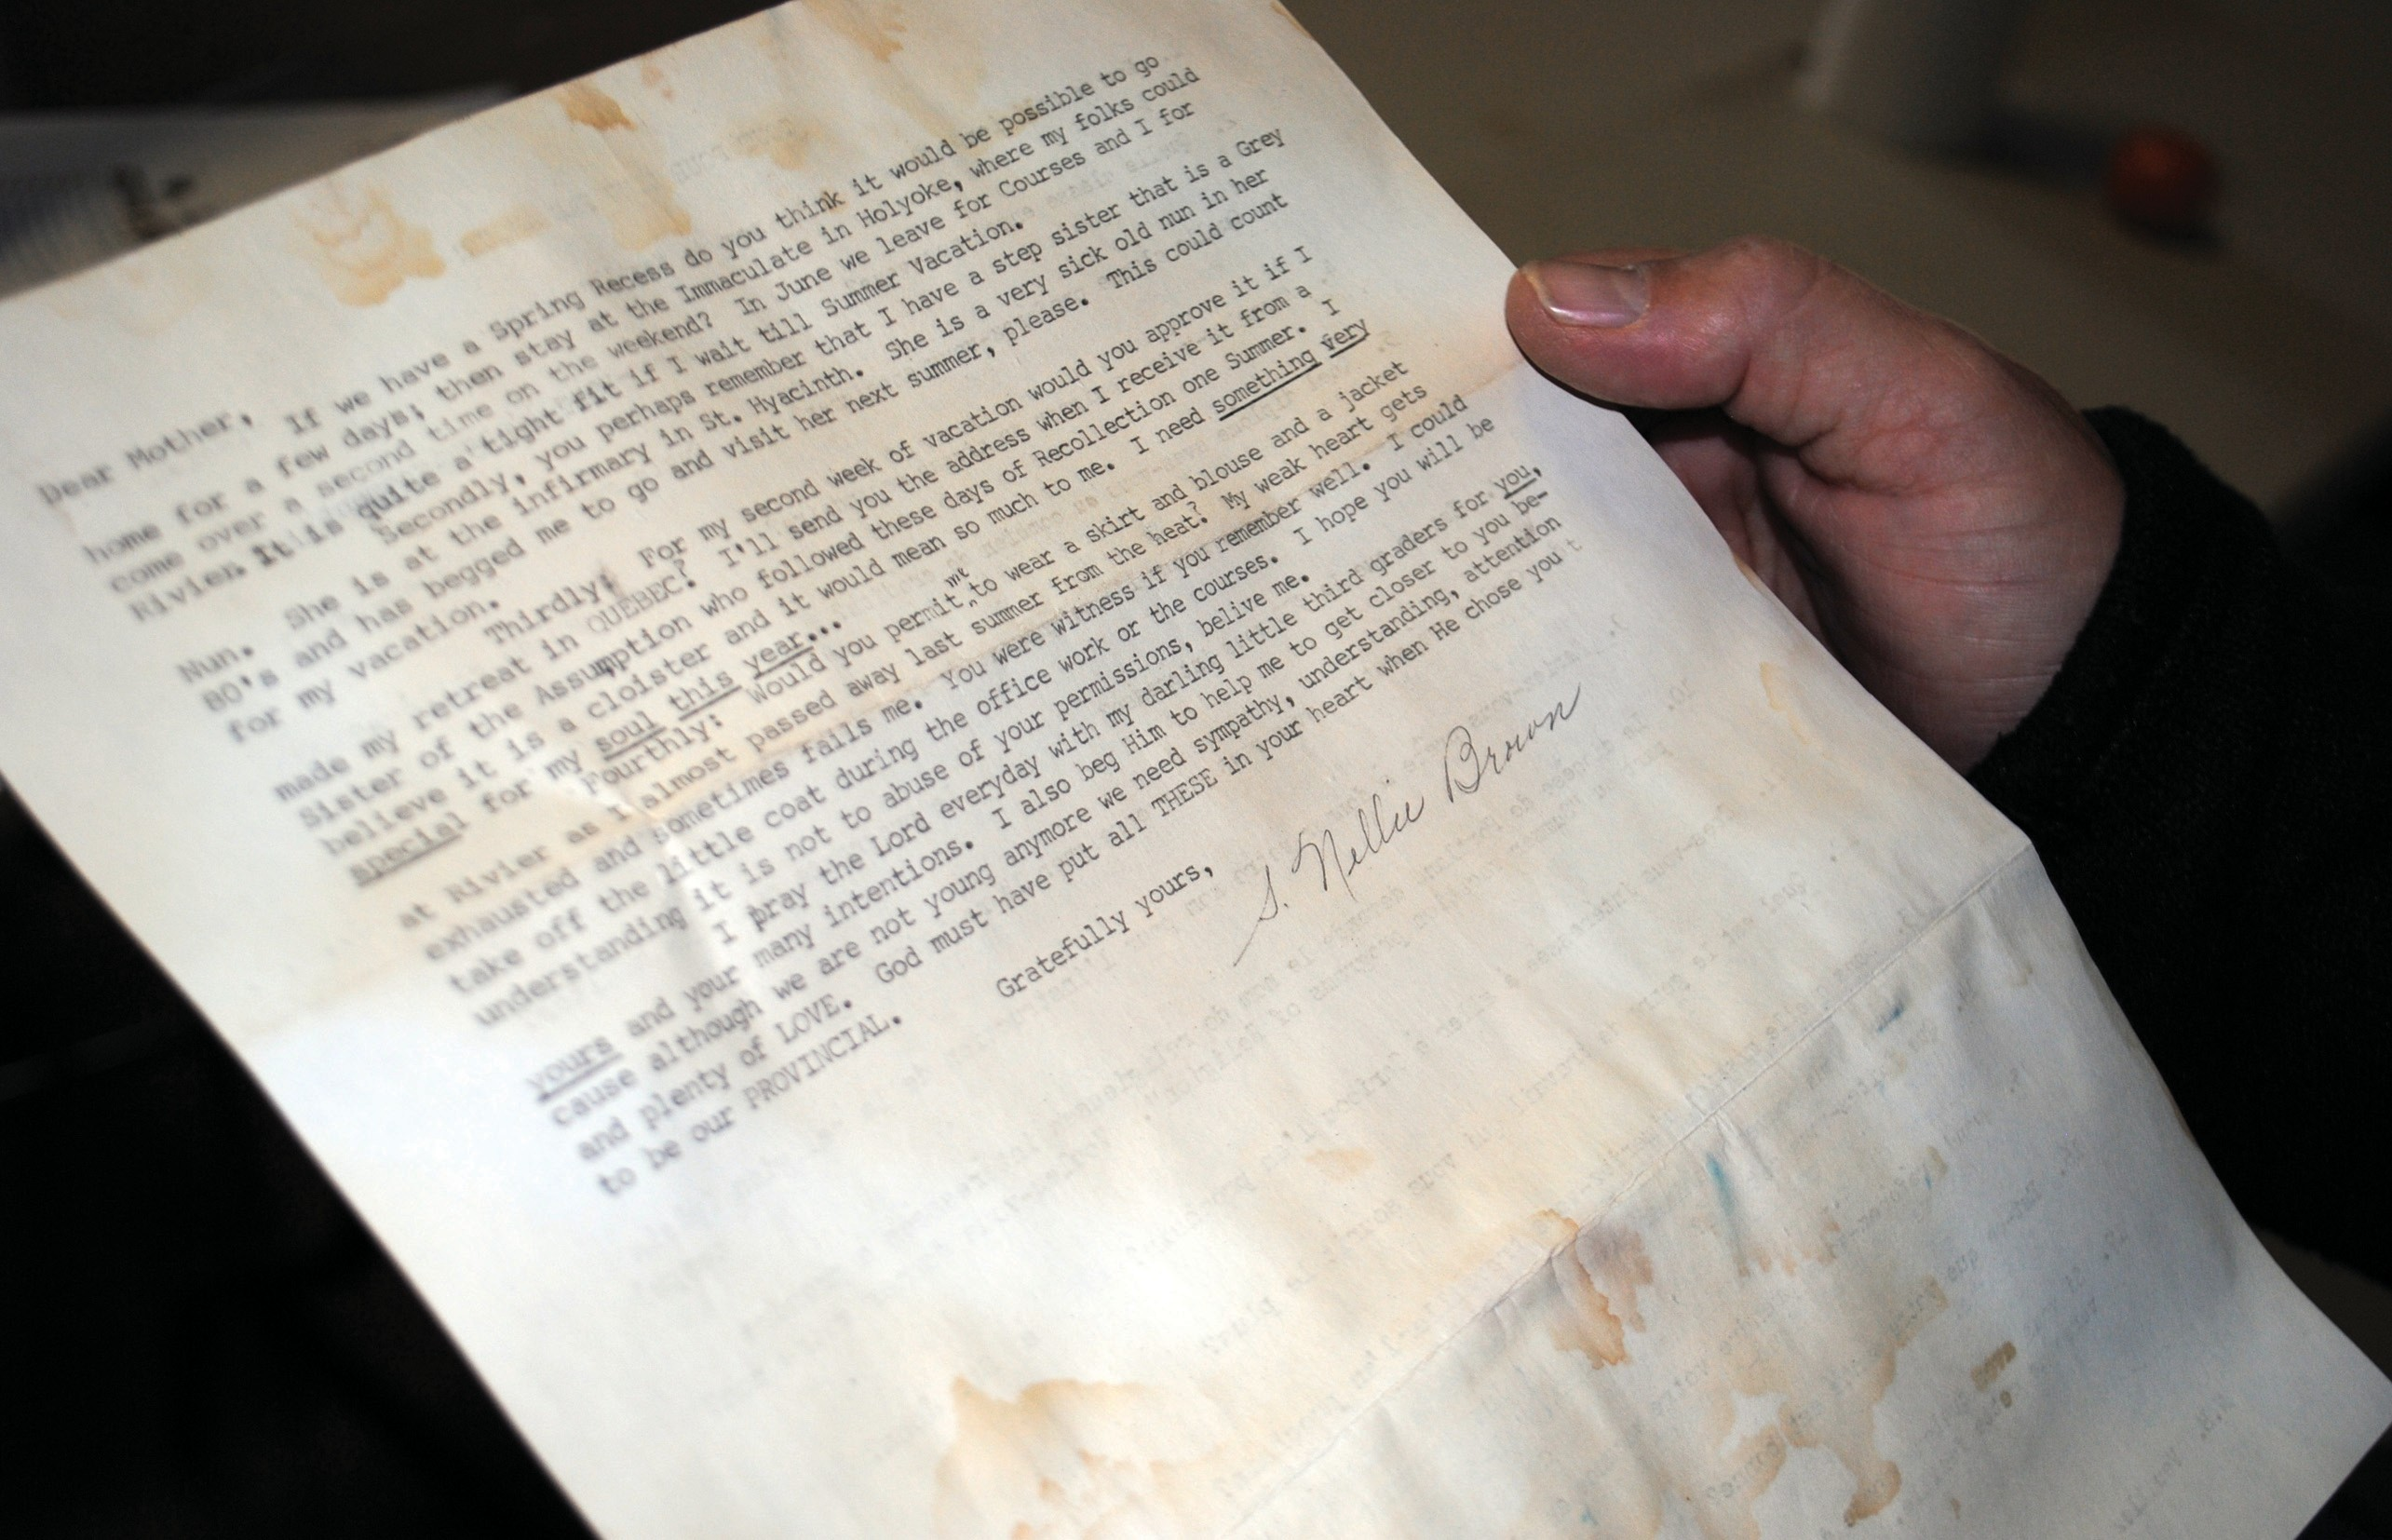 Guy Gagnon, executive director of the Biddeford Housing Authority, holds a letter discovered last week by a construction worker in the convent of the former St. Andre's Catholic Church in Biddeford. The letter is signed by Sister Nellie Brown, who taught at the school. Pictured lower right is Sister Nellie Brown.